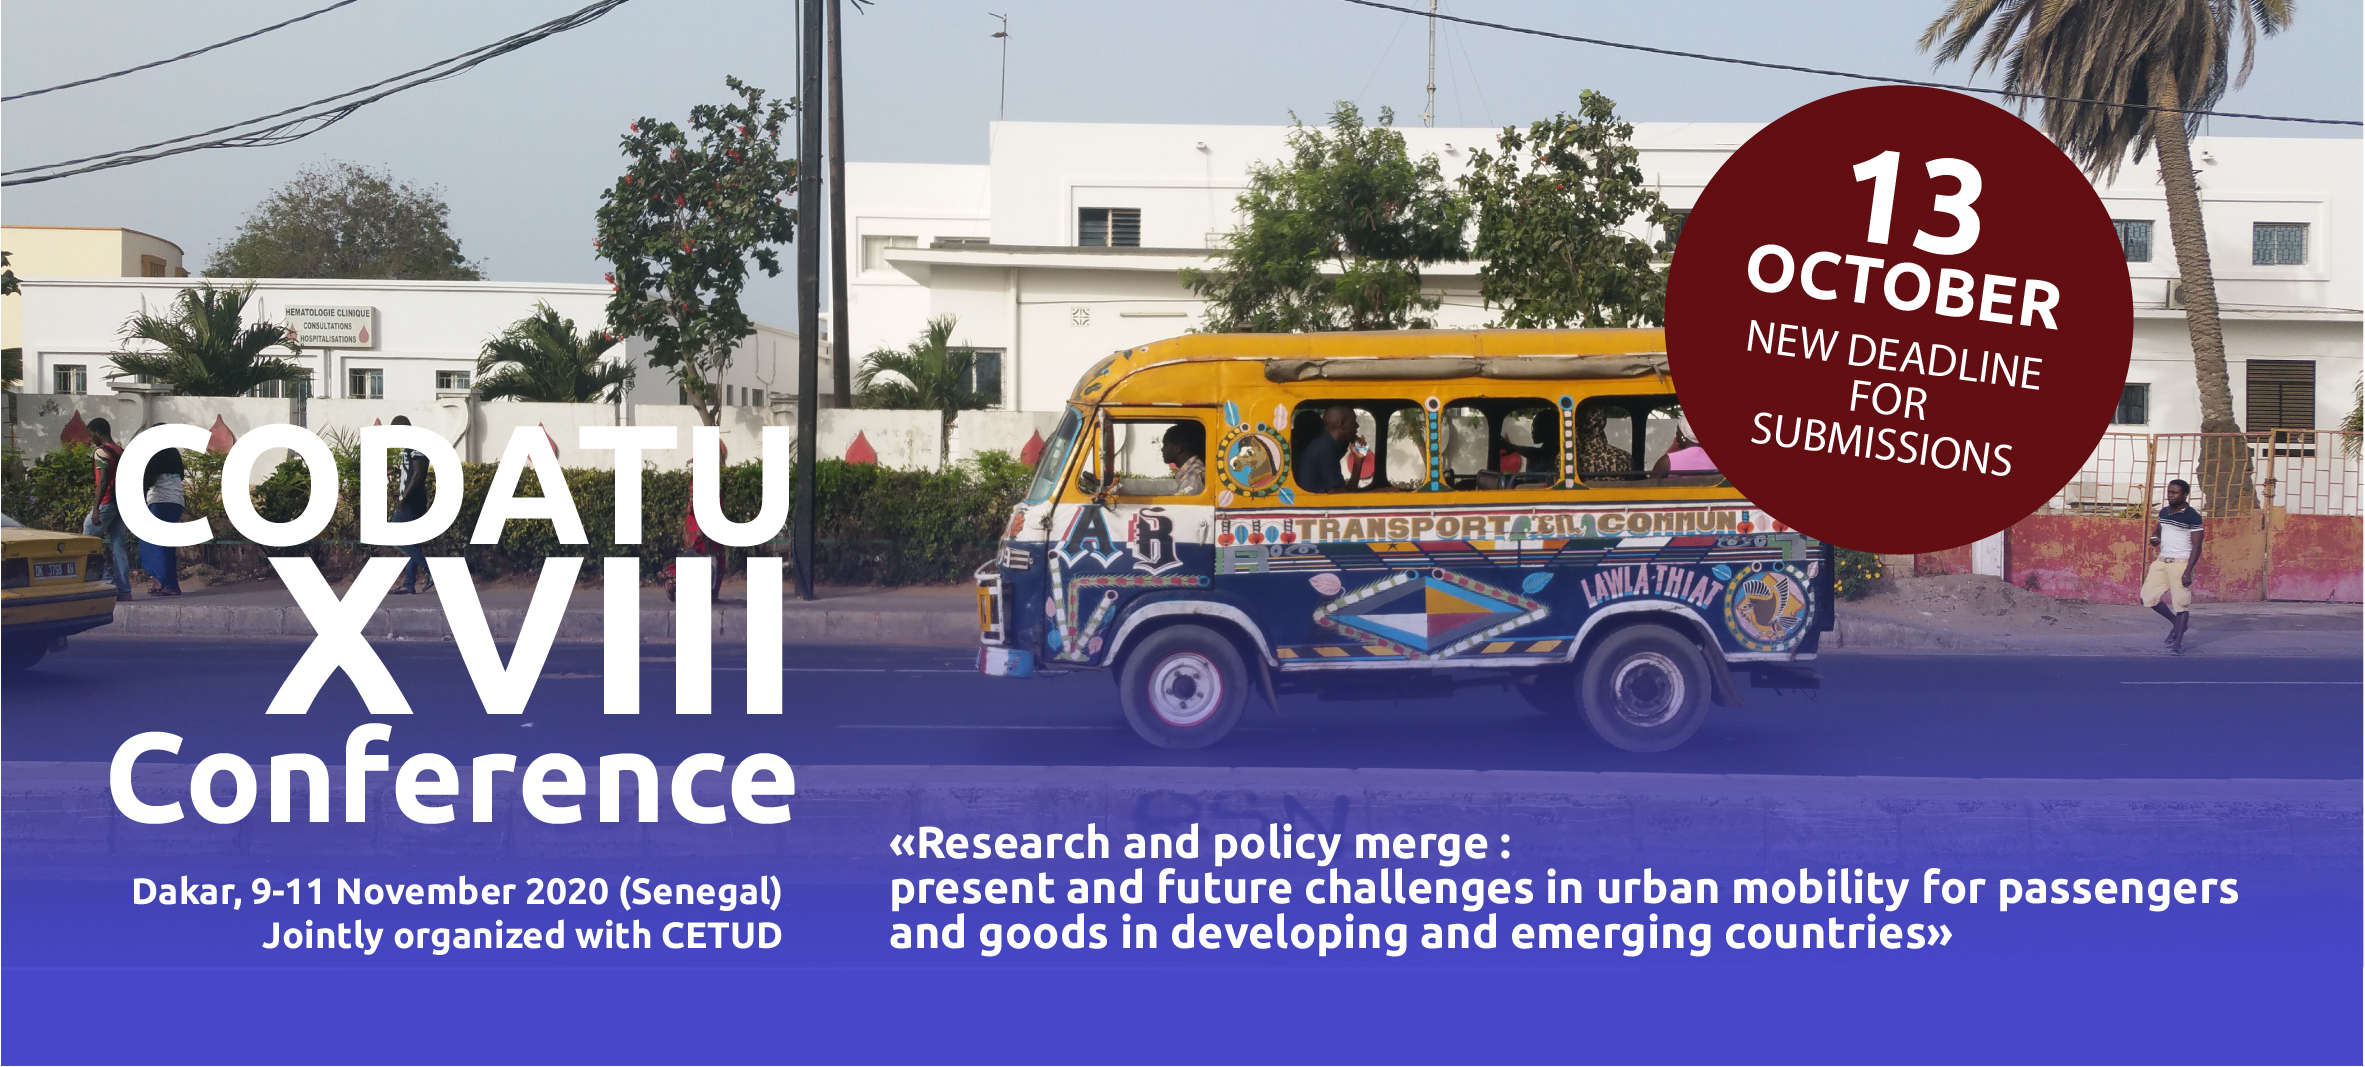 CODATU XVIII Conference: CALL FOR ABSTRACTS – DEADLINE EXTENSION FOR SUBMISSIONS